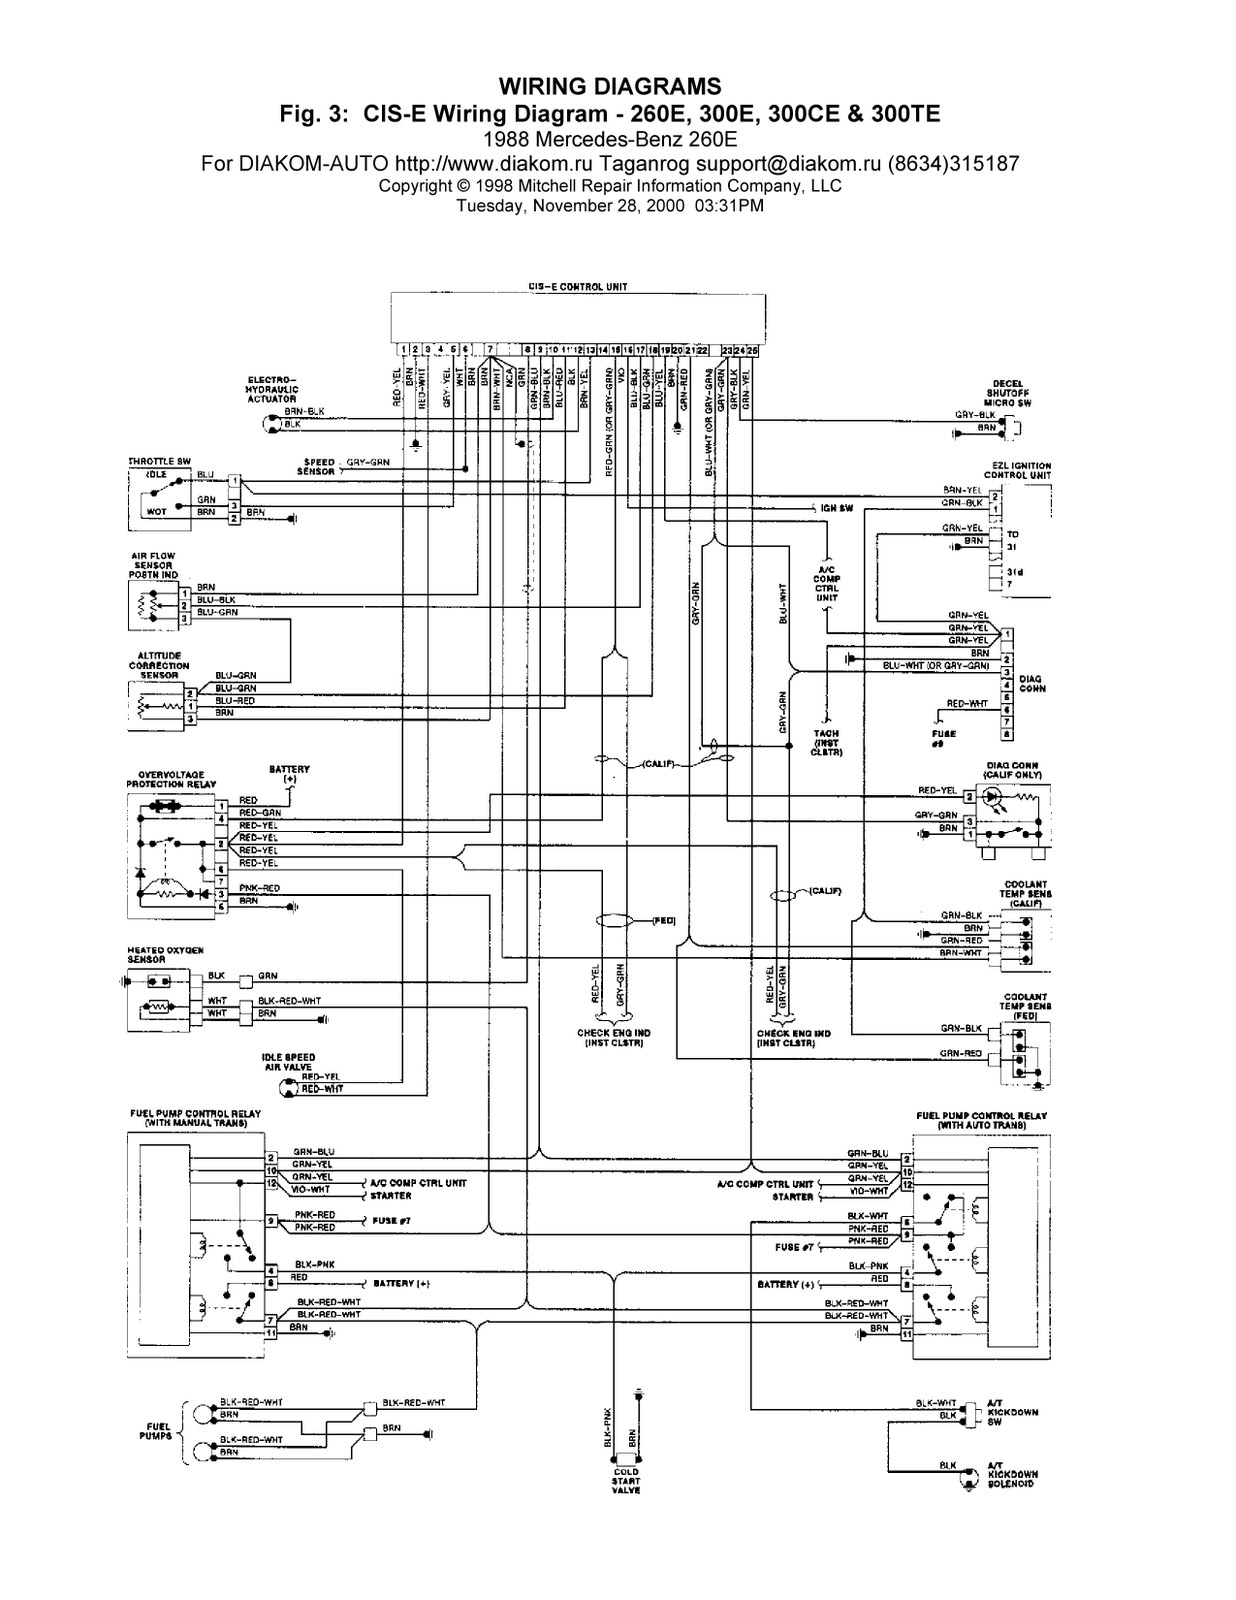 Mercedes r129 wiring diagram